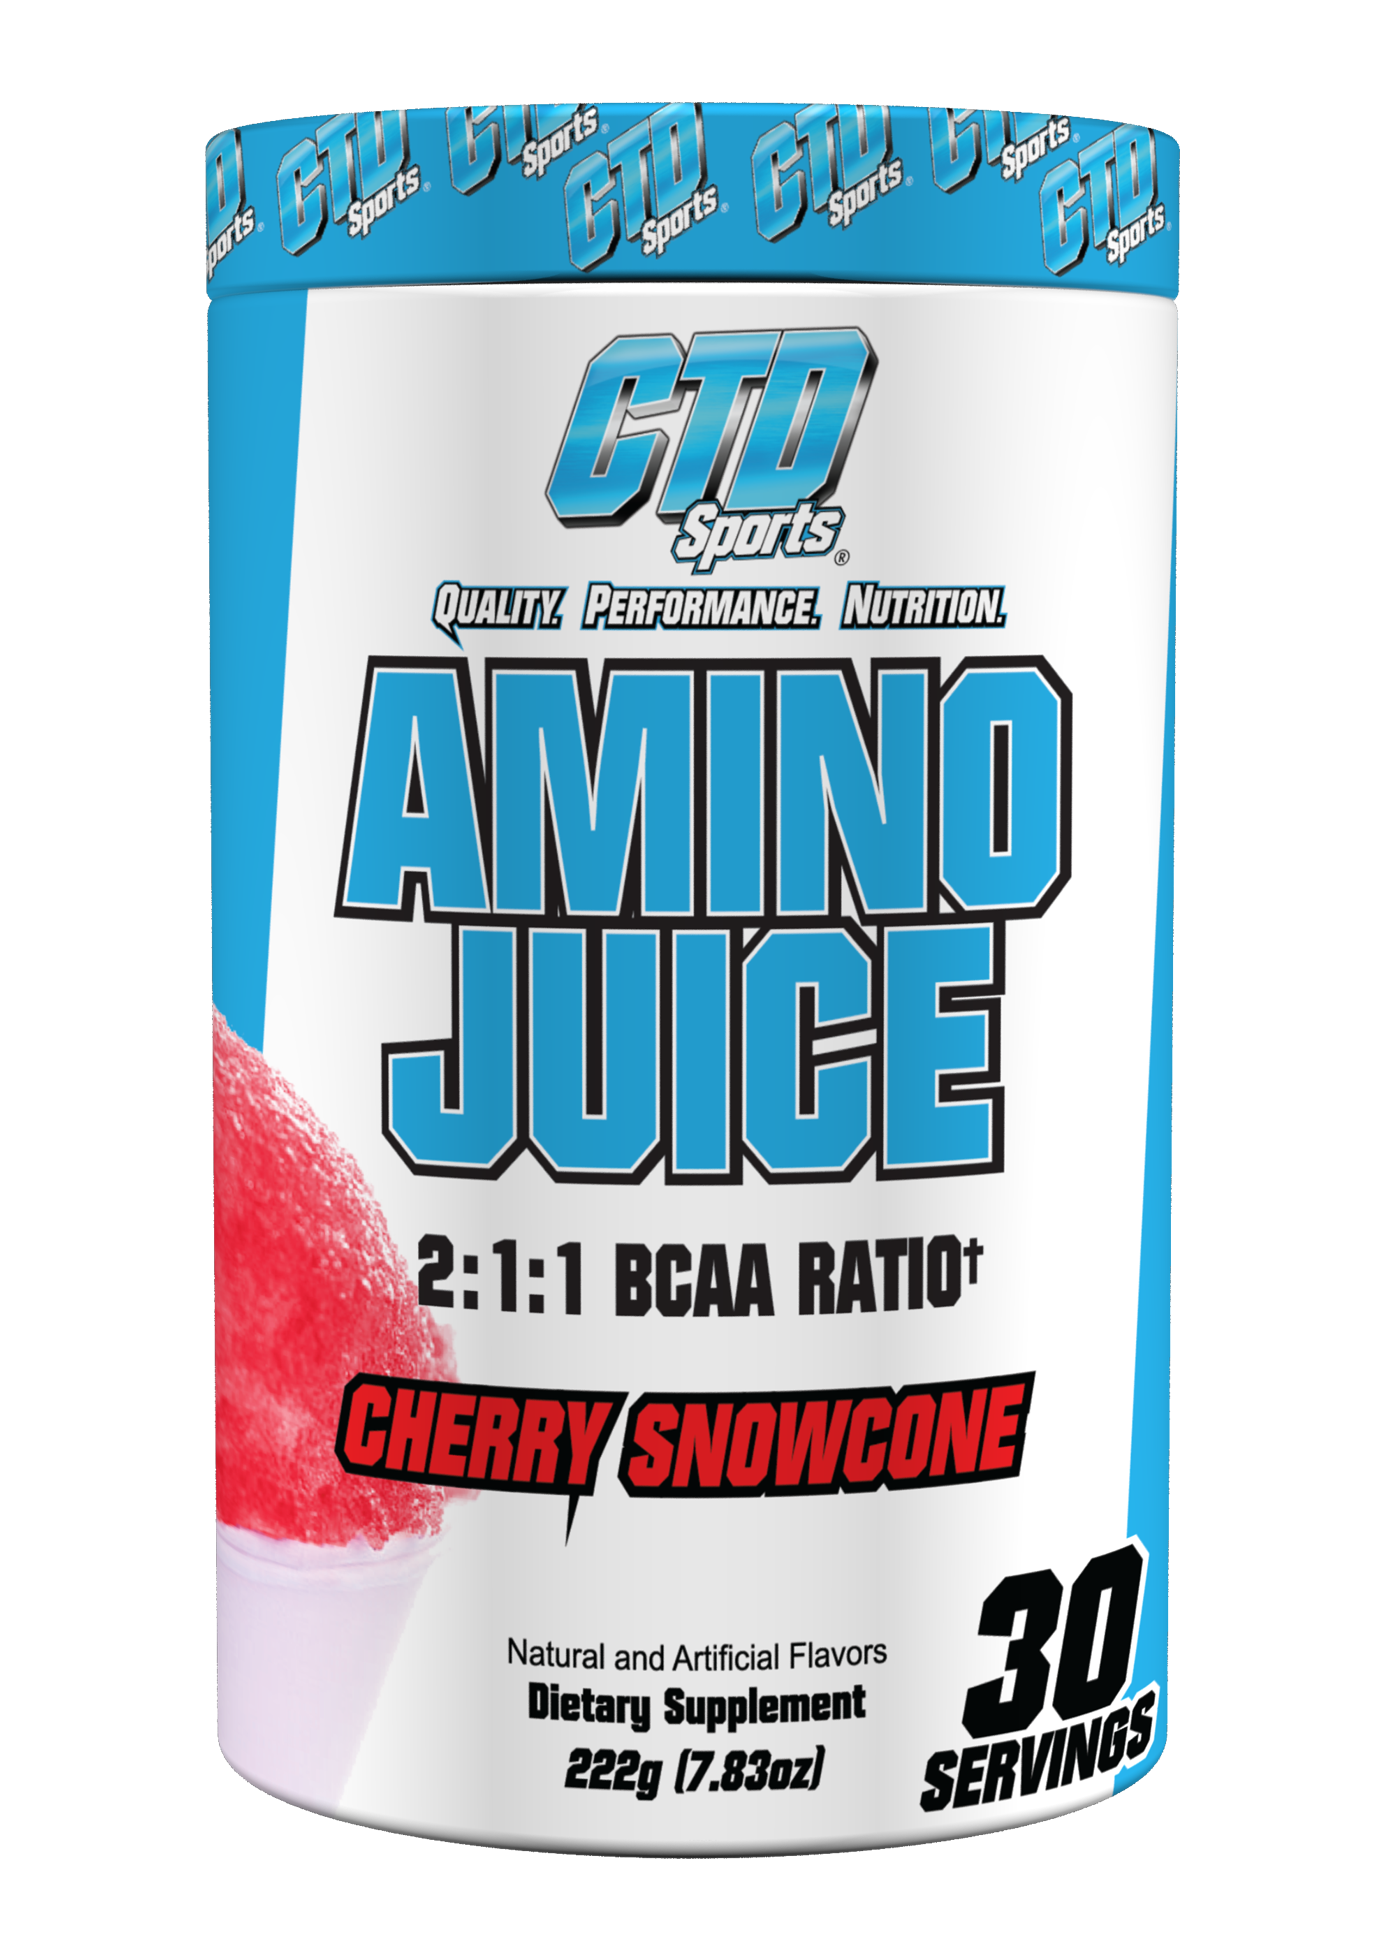 CTD Sports Amino Juice Cherry Snowcone